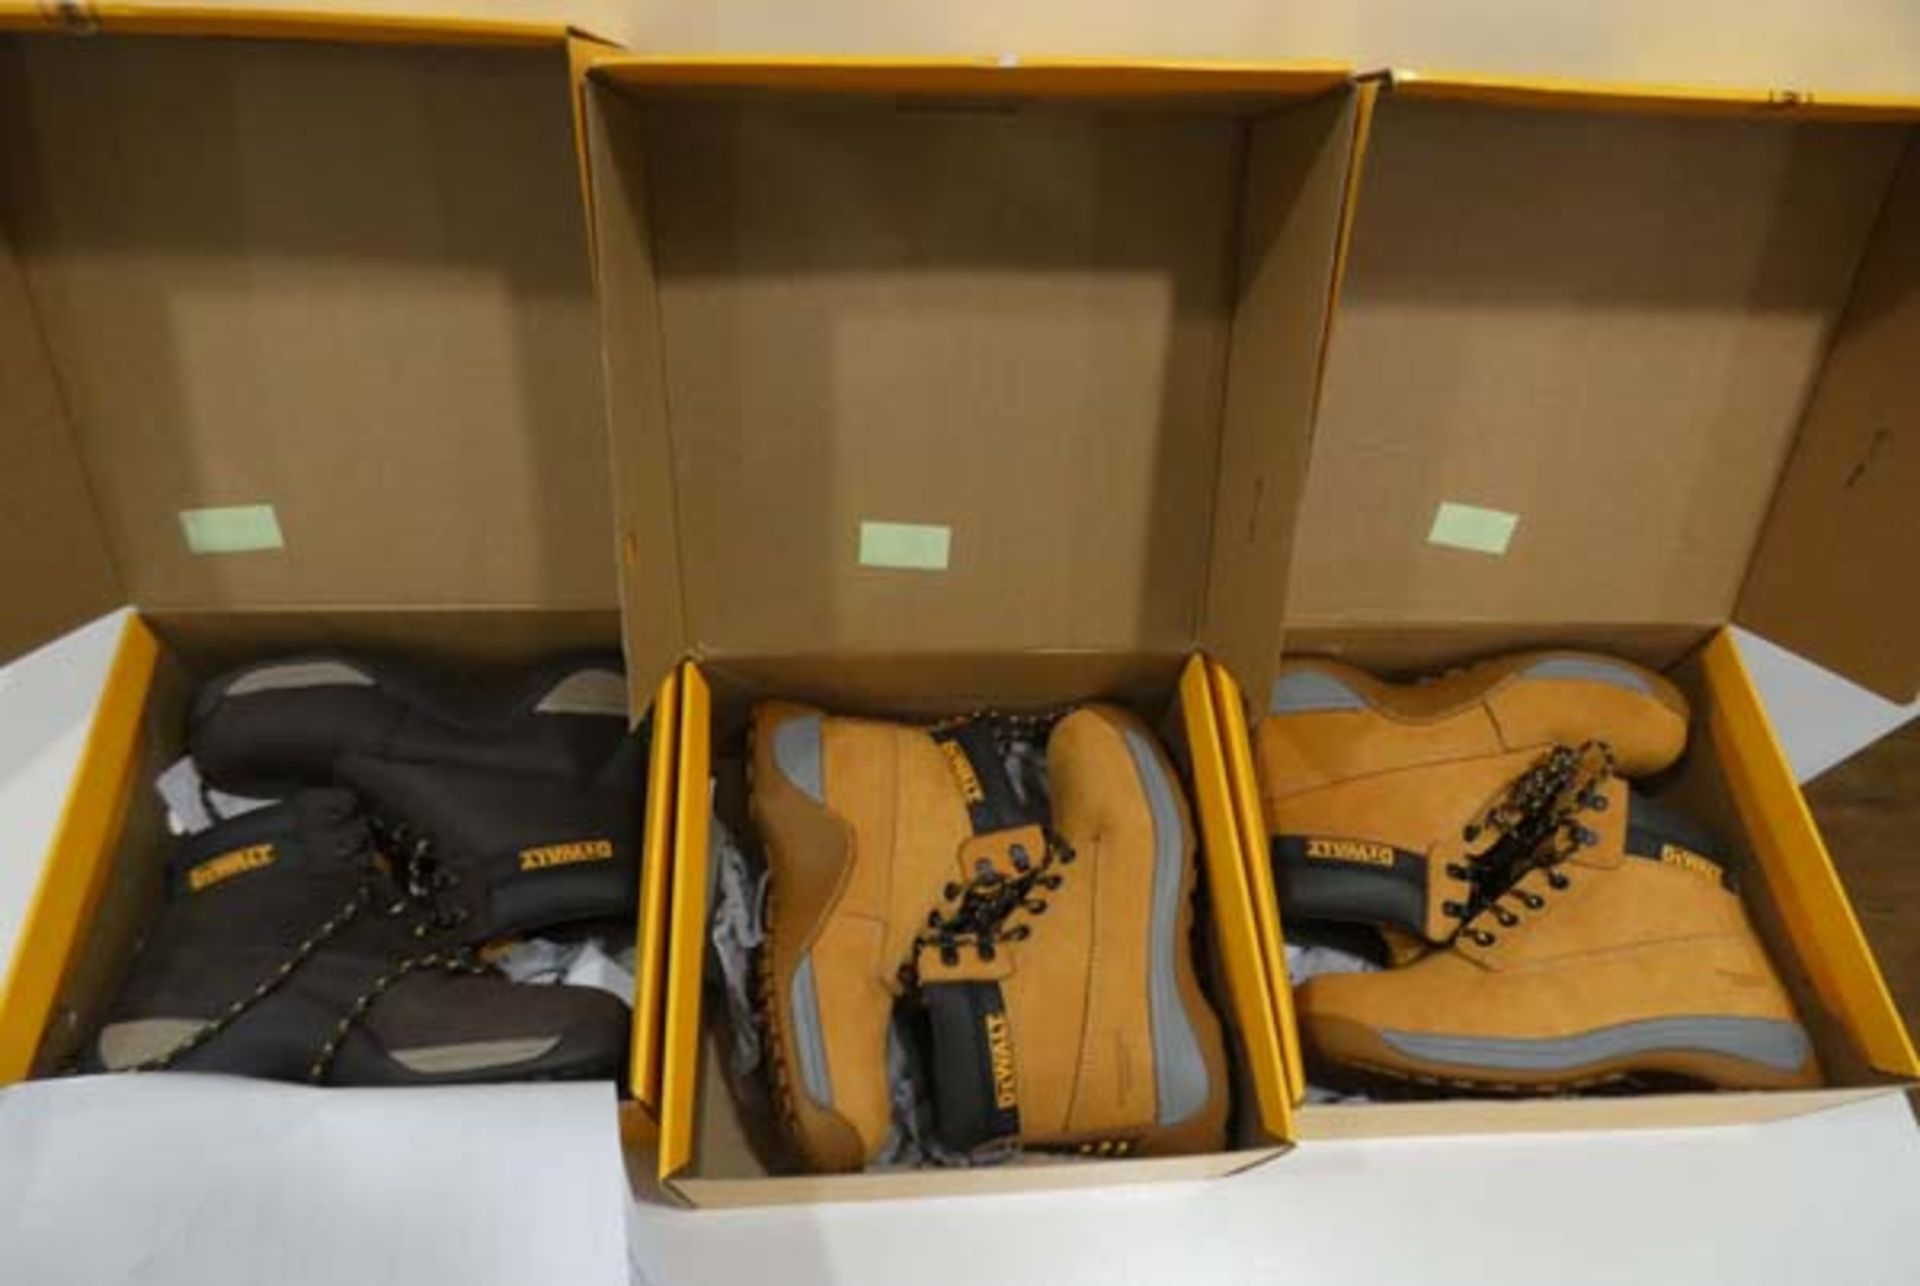 3 Pairs of DeWalt mason industrial steel top capped boots in sizes 11, 8 & 7 - Image 2 of 2